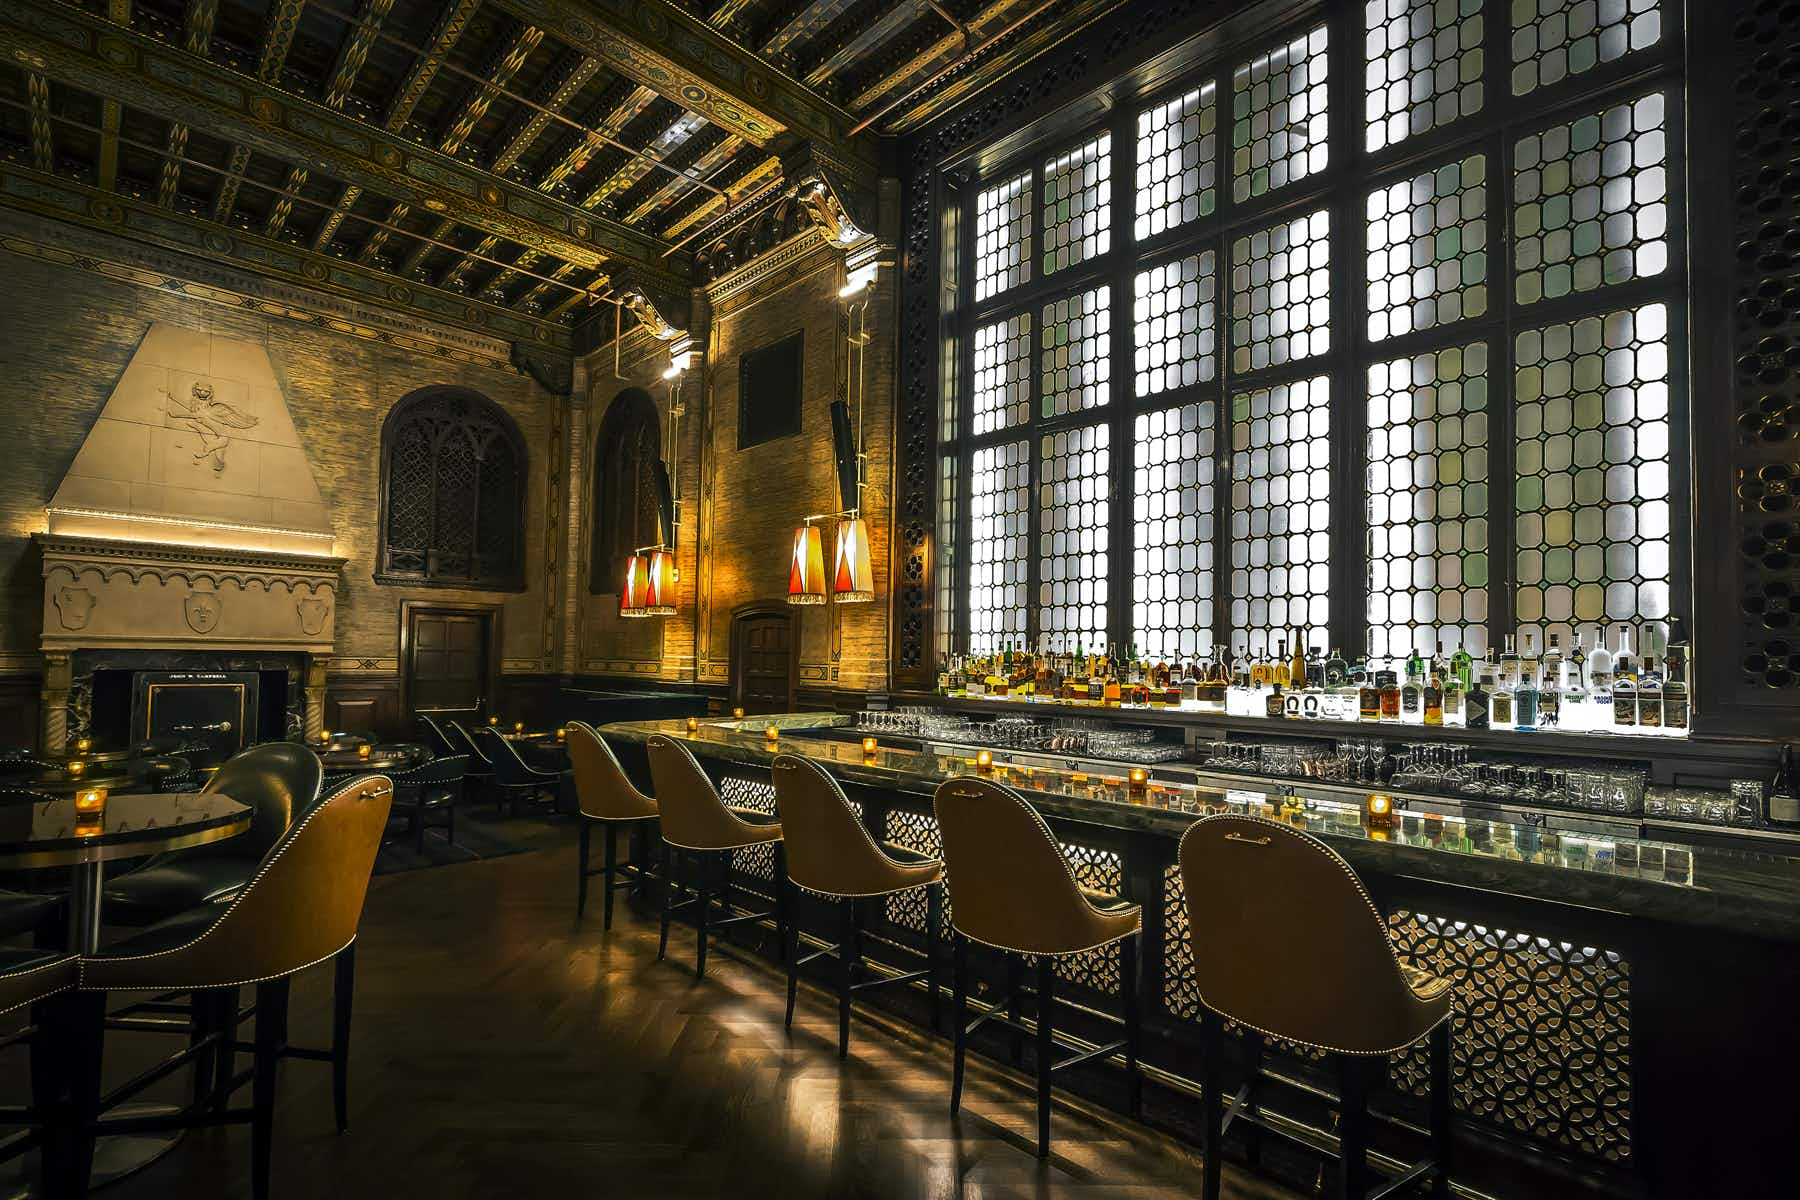 Grand Central Terminal's 'secret' bar reopens in New York... but patrons can expect big changes